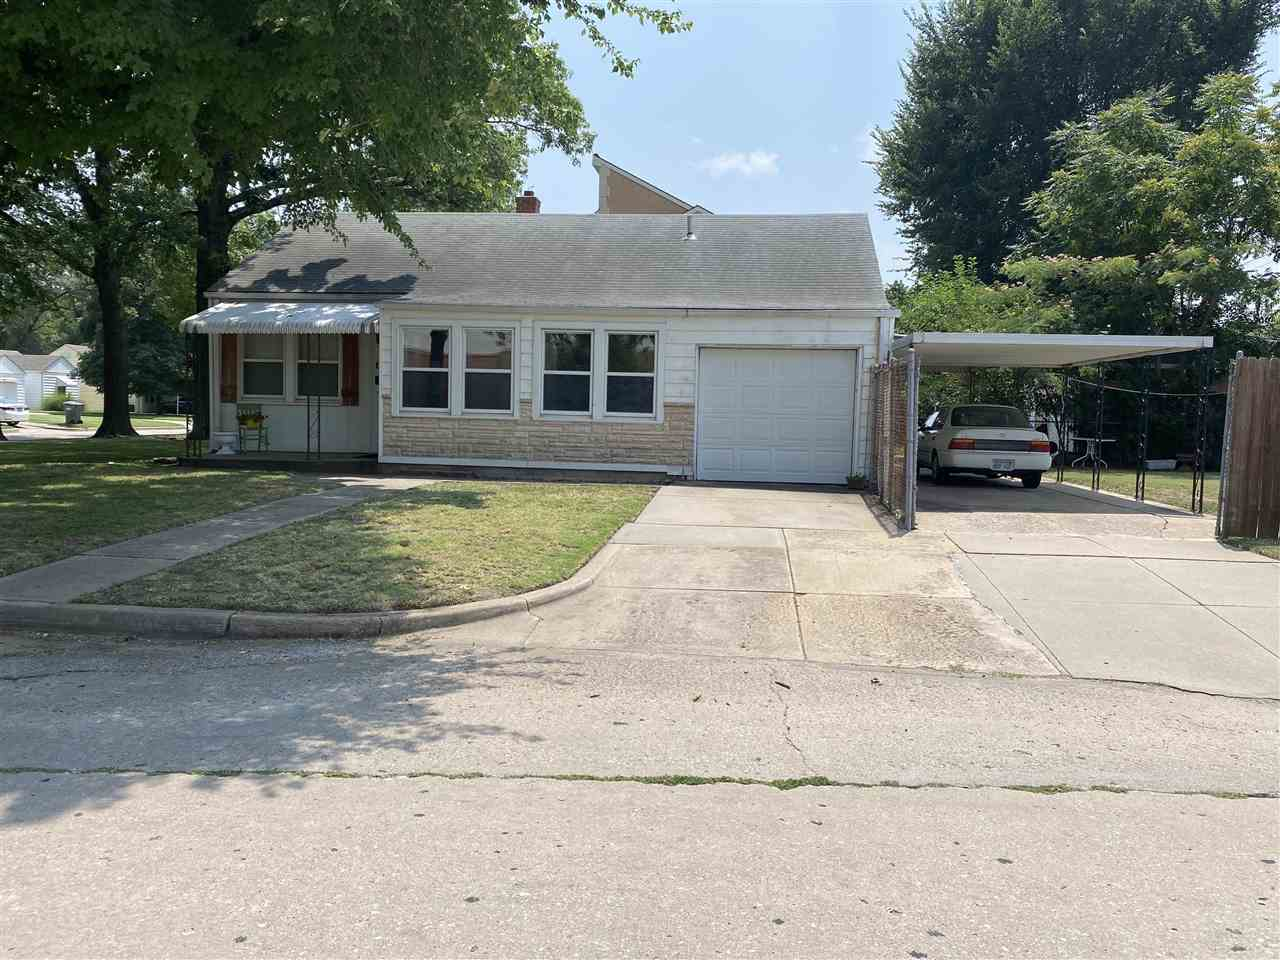 Don't miss this beautiful 2 bedroom, 1 bathroom ranch home on a Conor lot conveniently located in a